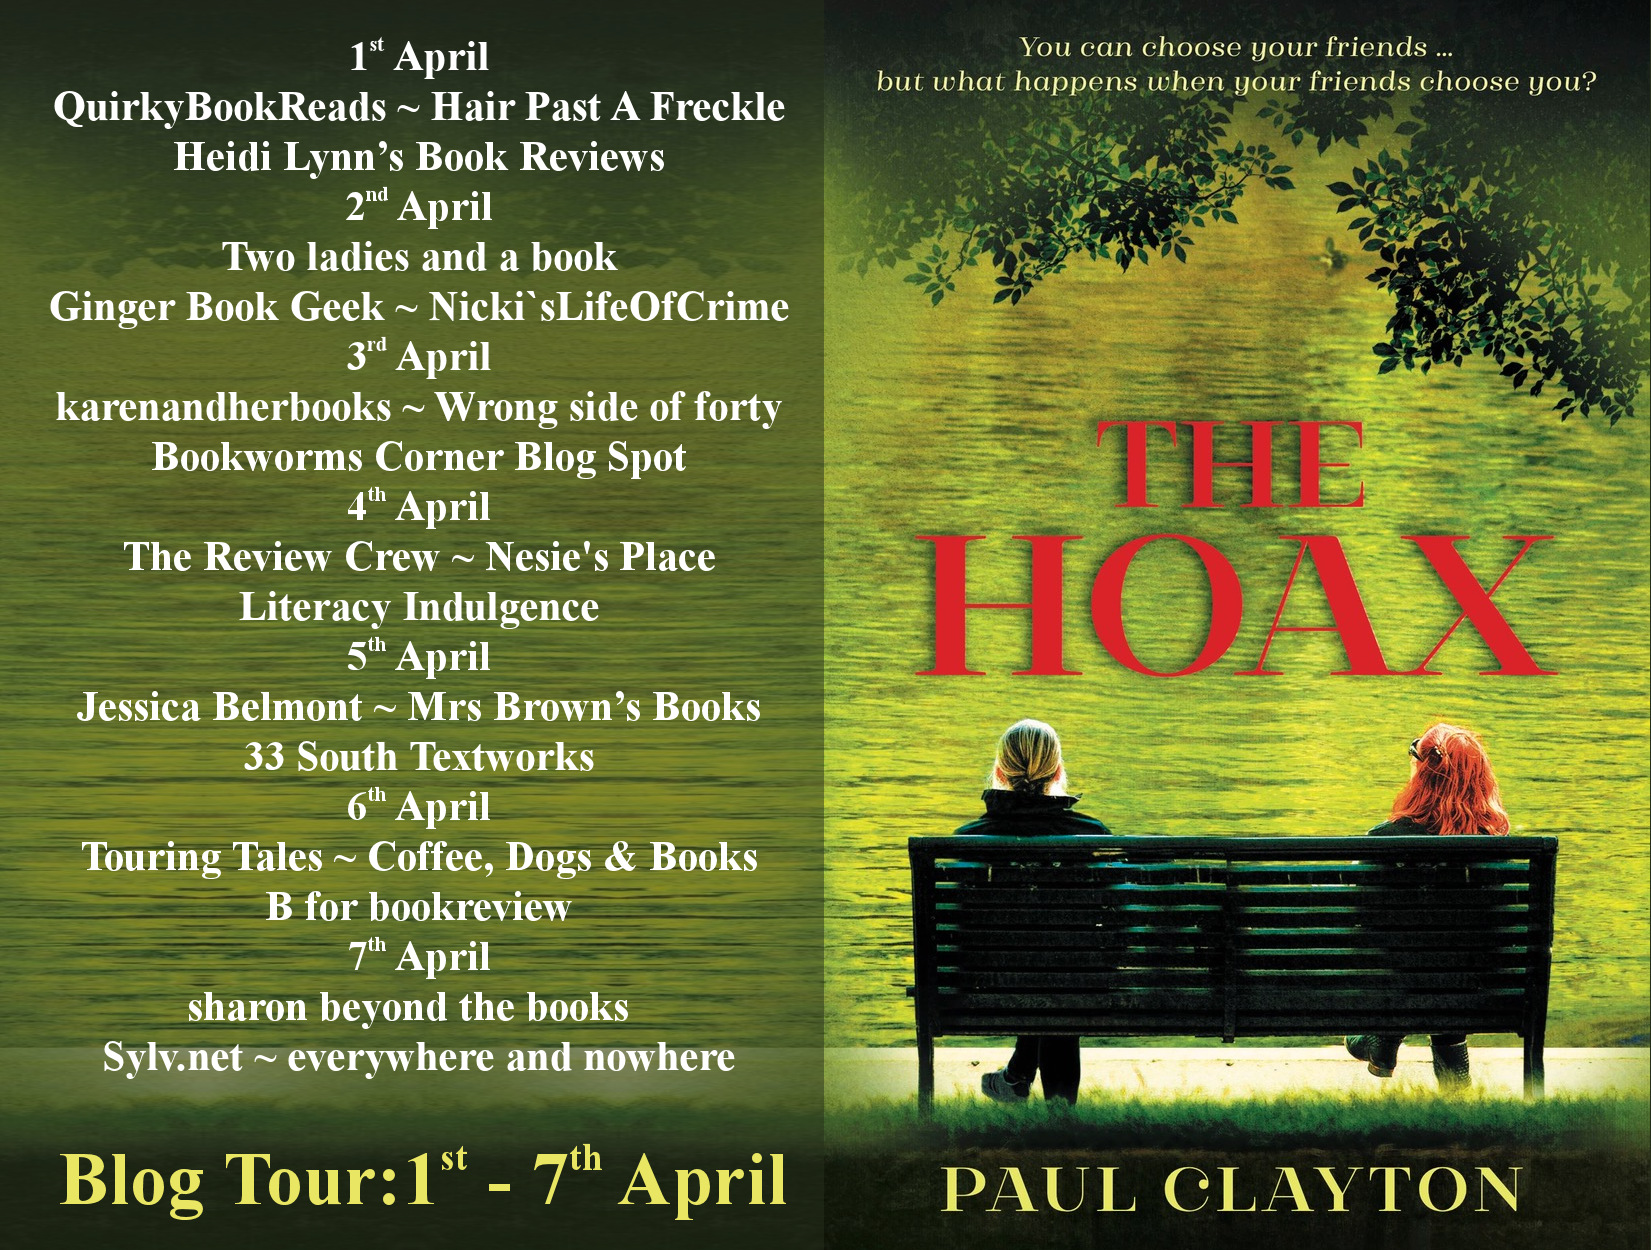 Blog Tour for The Hoax